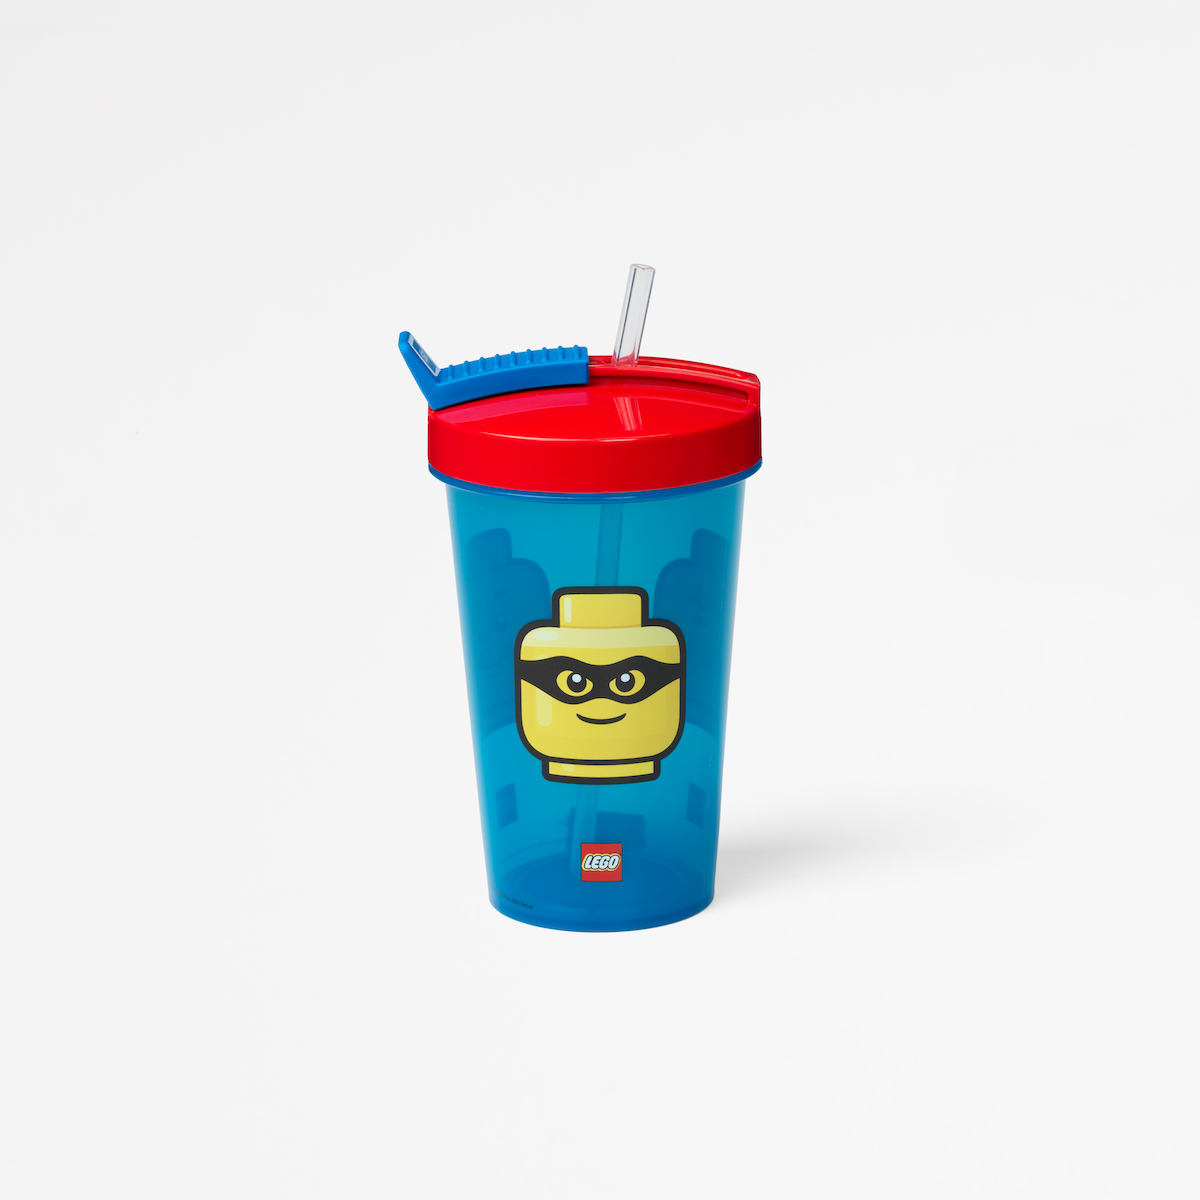 Lego tumbler with straw, collection, lunch, lego head, kids, fun, blue